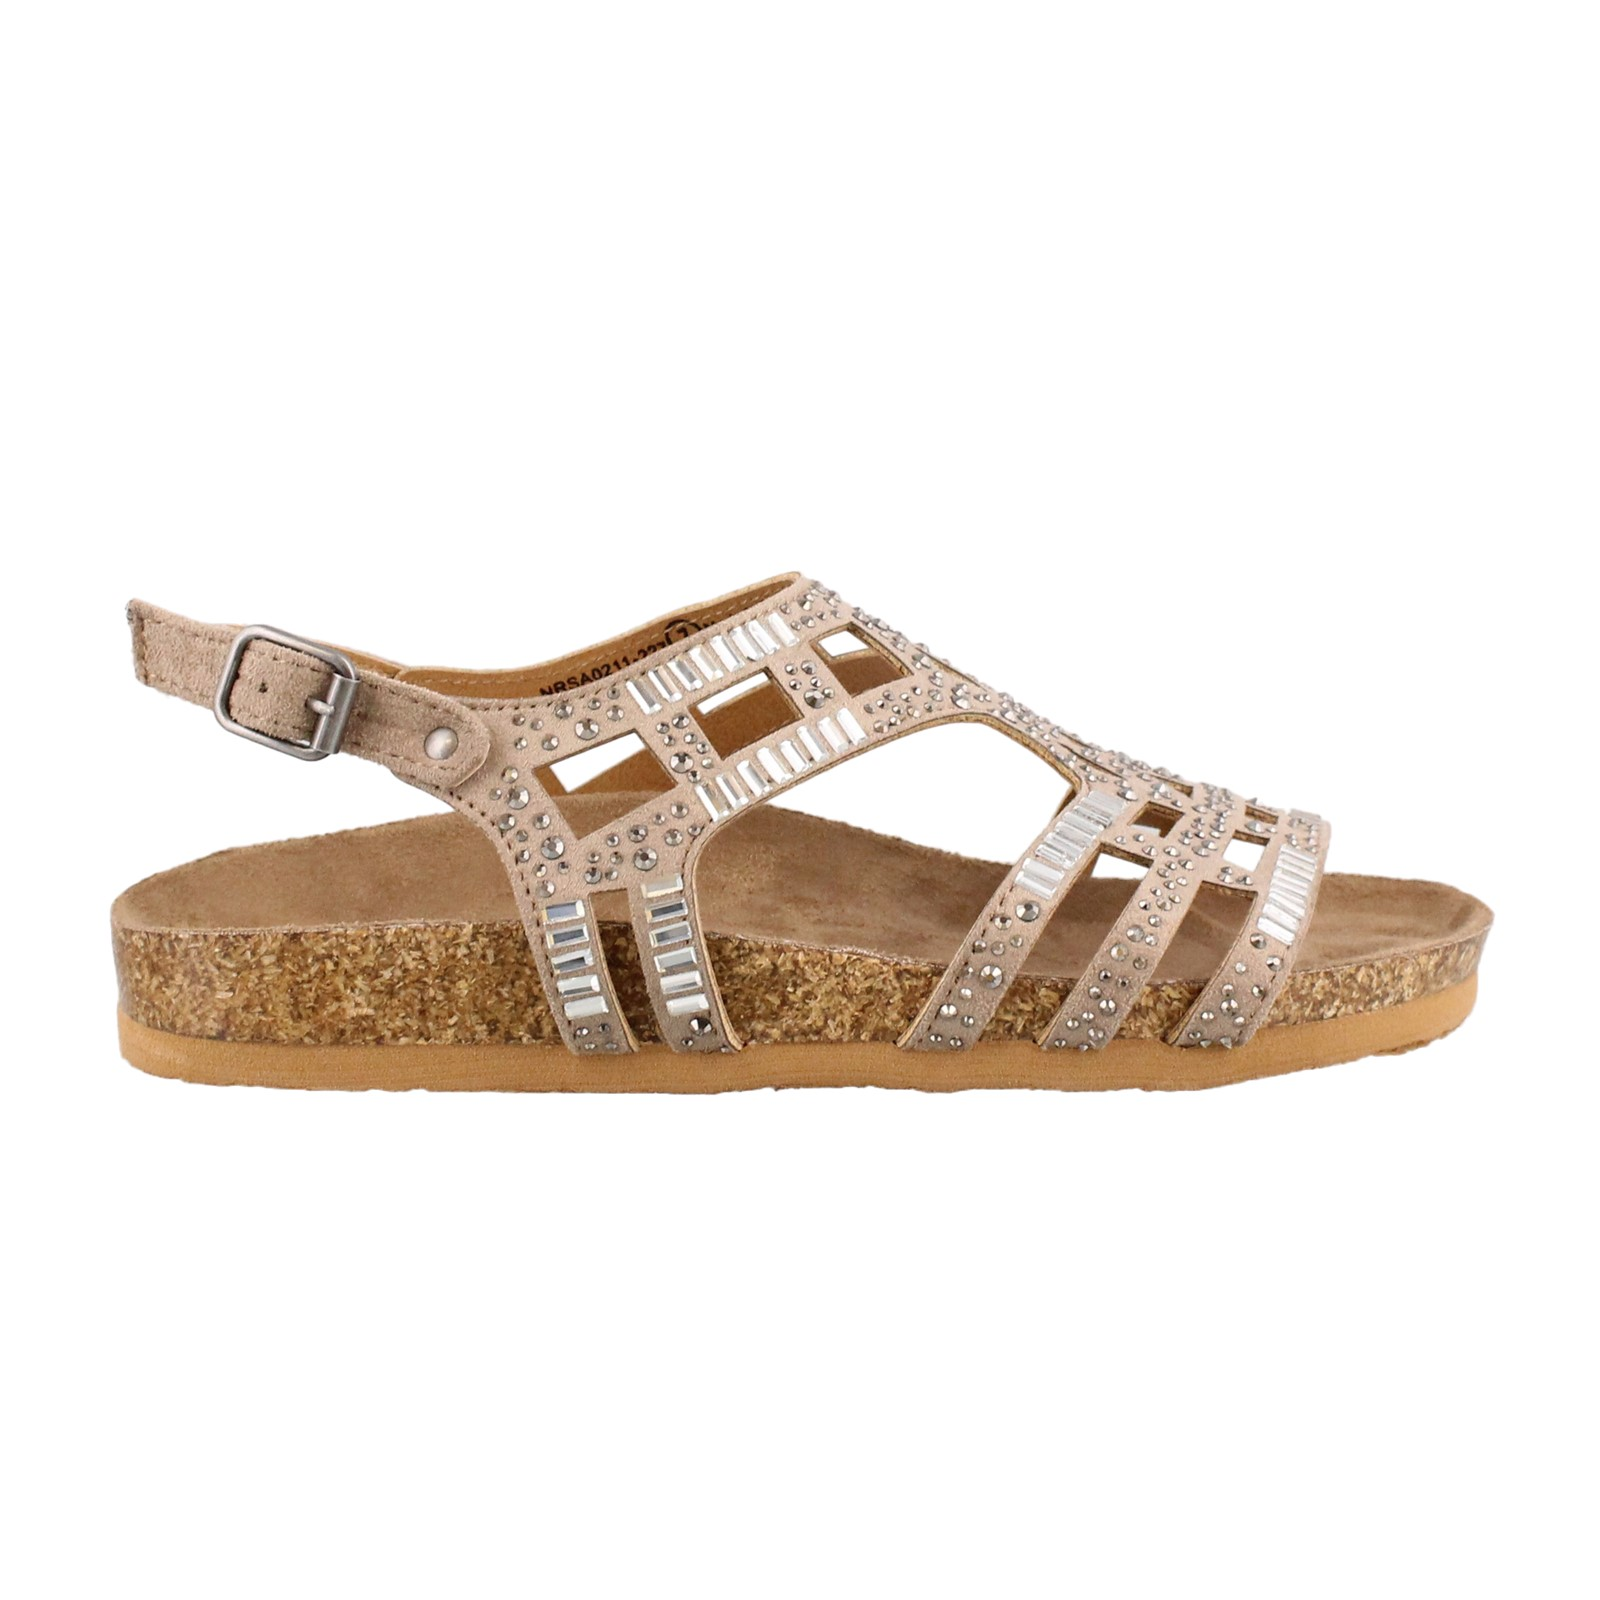 Women's Not Rated, Bushiest Sandals